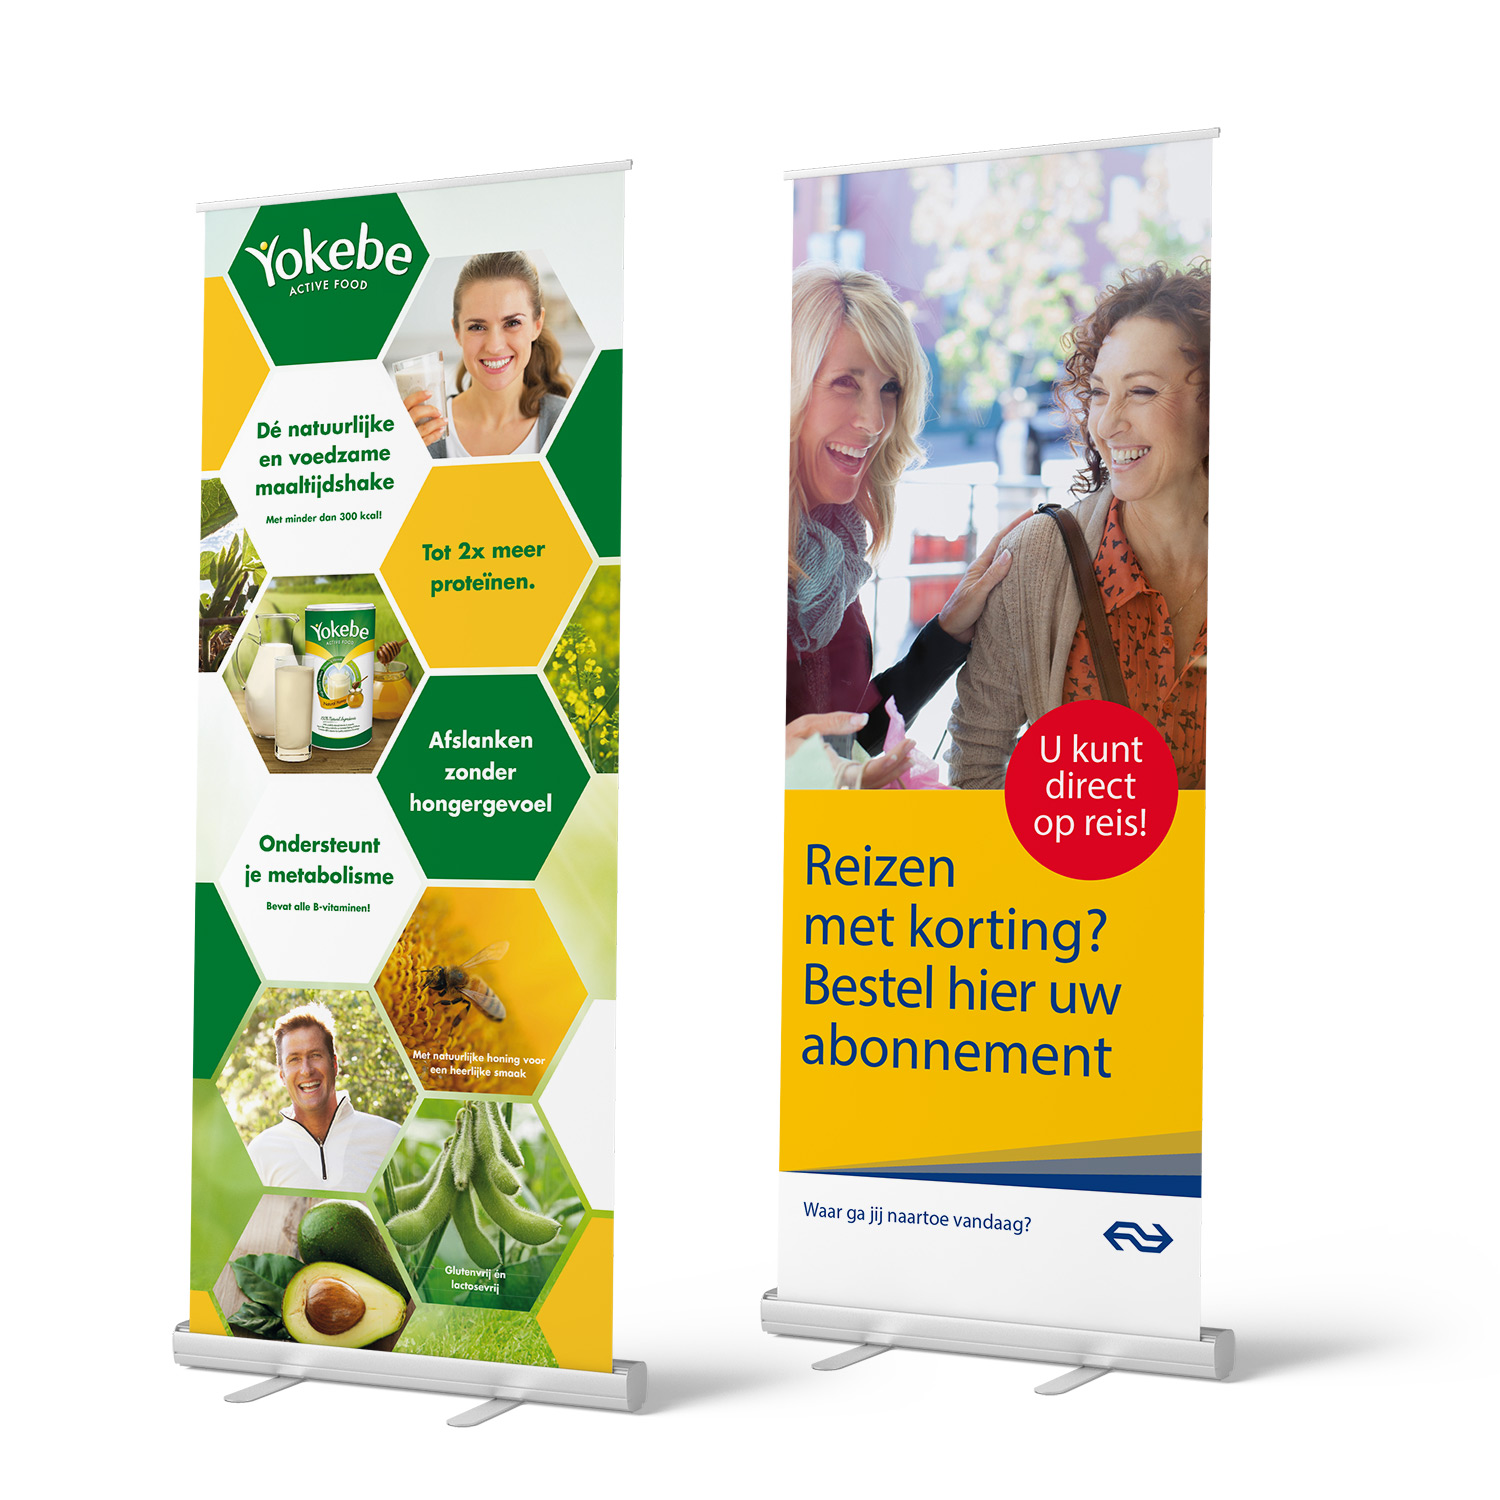 Point-of-Sale roll-up banners